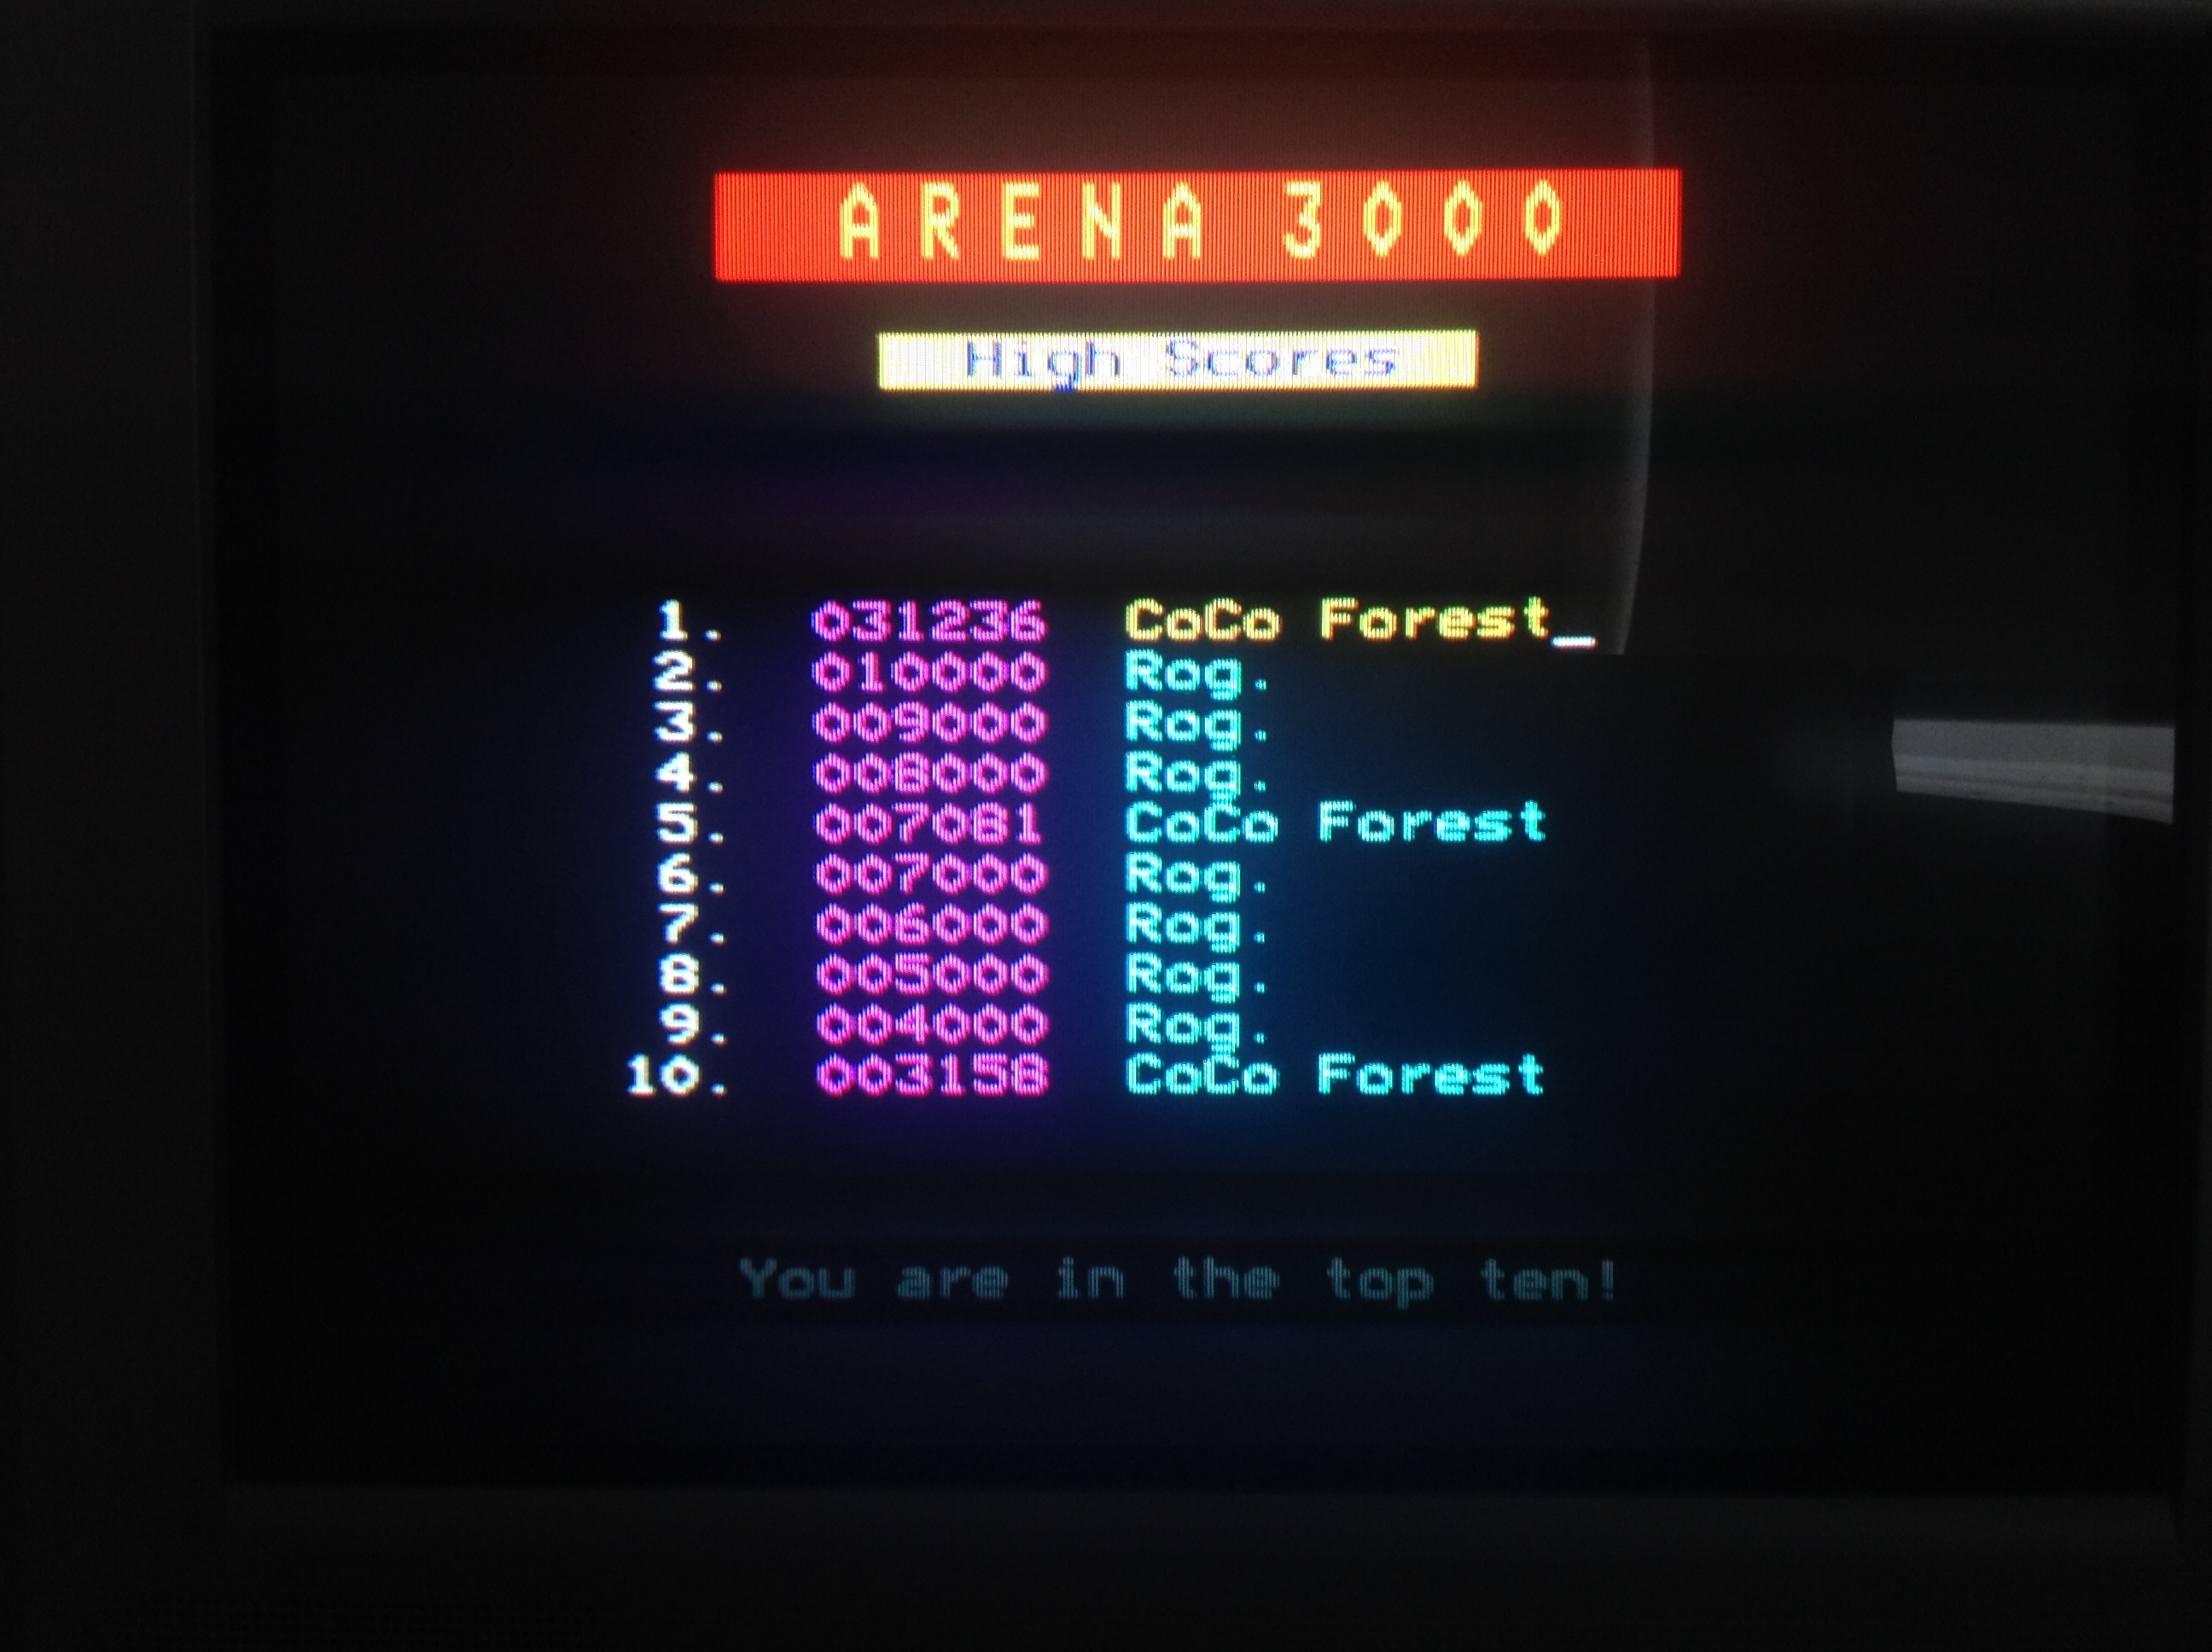 CoCoForest: Arena 3000 (BBC Micro) 31,236 points on 2018-07-12 05:01:54